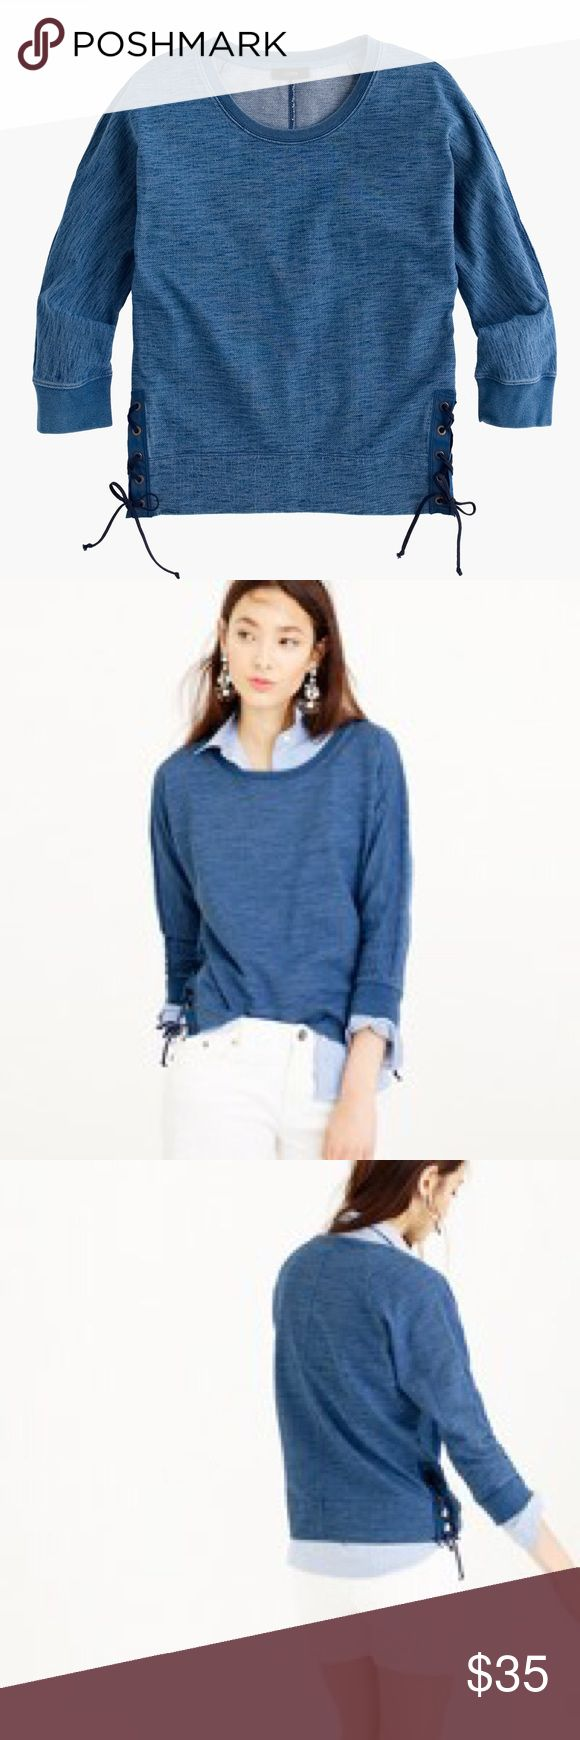 J. Crew Lace Up Sweatshirt size large Meet Kyla. We don't think an easy layering piece has to be basic. And this lovely lady is anything but basic. She's a lightweight sweatshirt dyed in indigo, giving her a mélange effect (those high/low hues). Her lace-up grommets on the side make her more out-to-dinner-wear than loungewear. Boxy slightly cropped fit, perfect on her own or with a longer tank or tshirt underneath. Sure to be a Spring favorite of yours. Size large. (L4) Offers warmly…